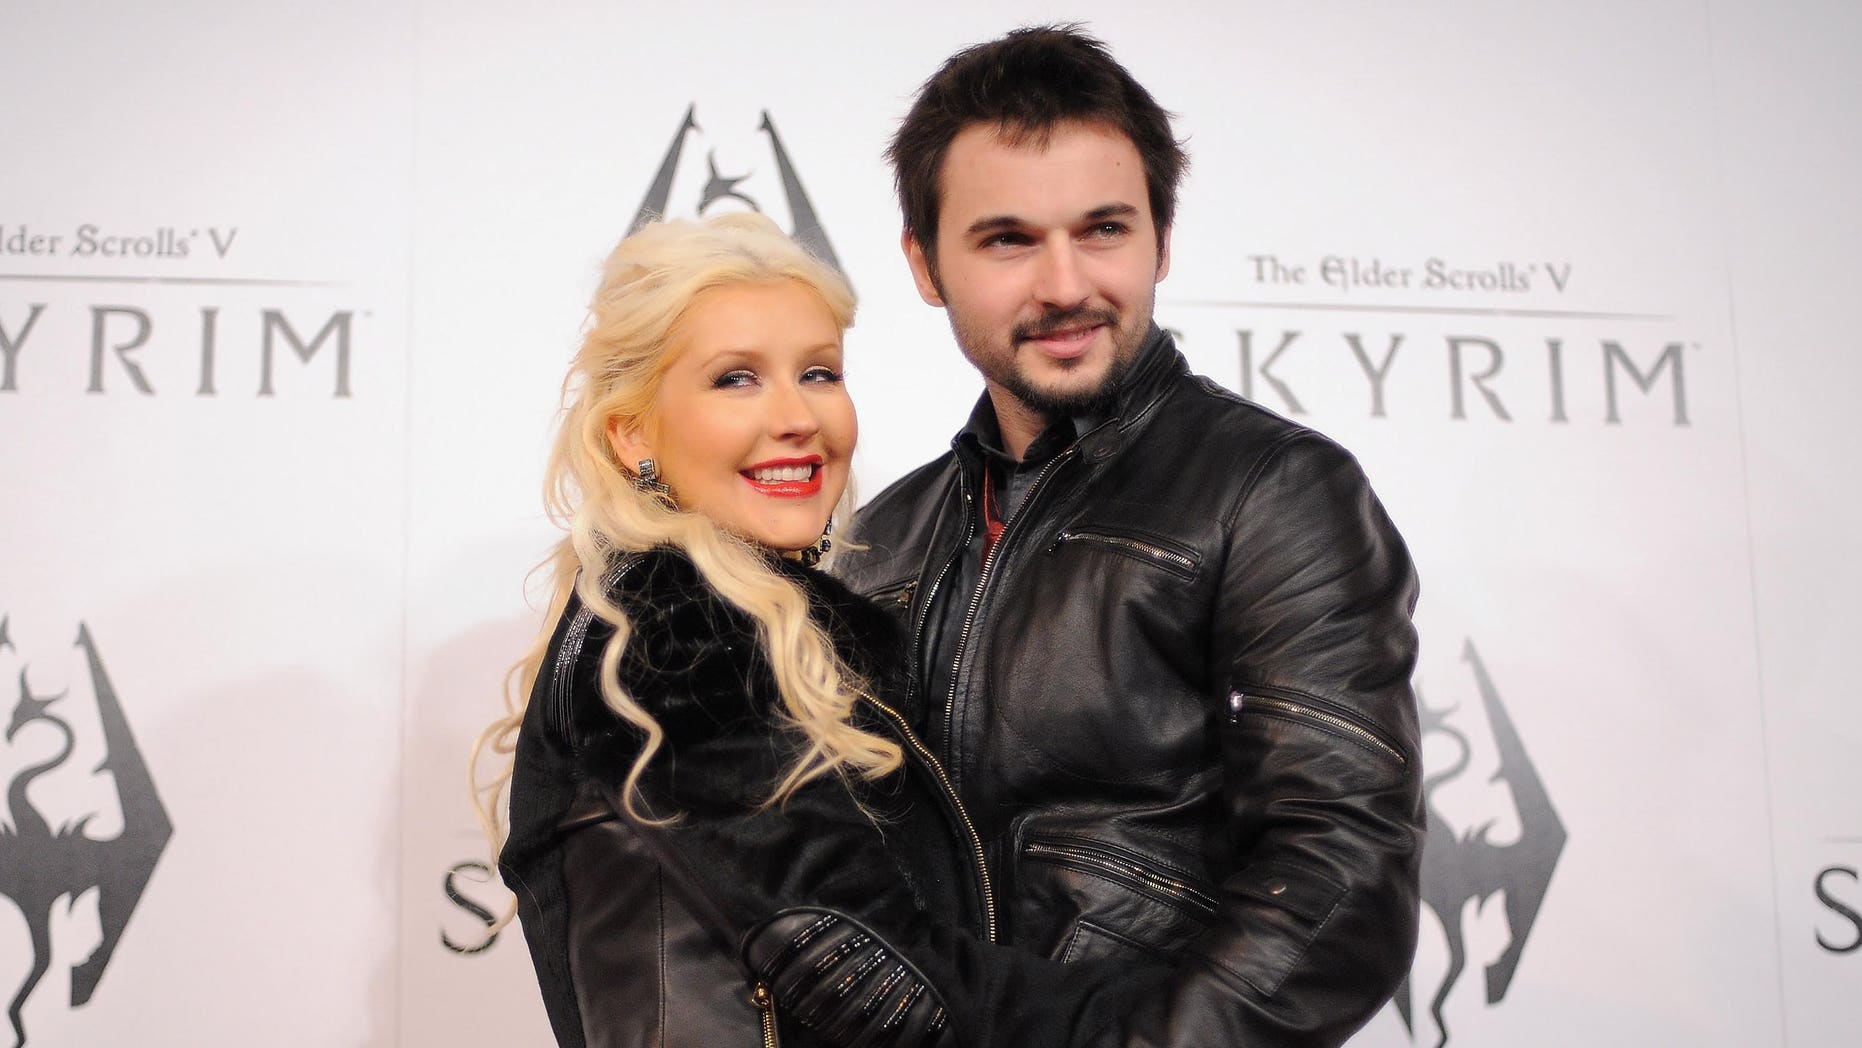 LOS ANGELES, CA - NOVEMBER 08:  Singer Christina Aguilera and Matt Rutler arrive at the official launch party for the most anticipated video game of the year, The Elder Scrolls V: Skyrim, at the Belasco Theatre on November 8, 2011 in Los Angeles, California.  (Photo by Jordan Strauss/Getty Images for Bethesda)